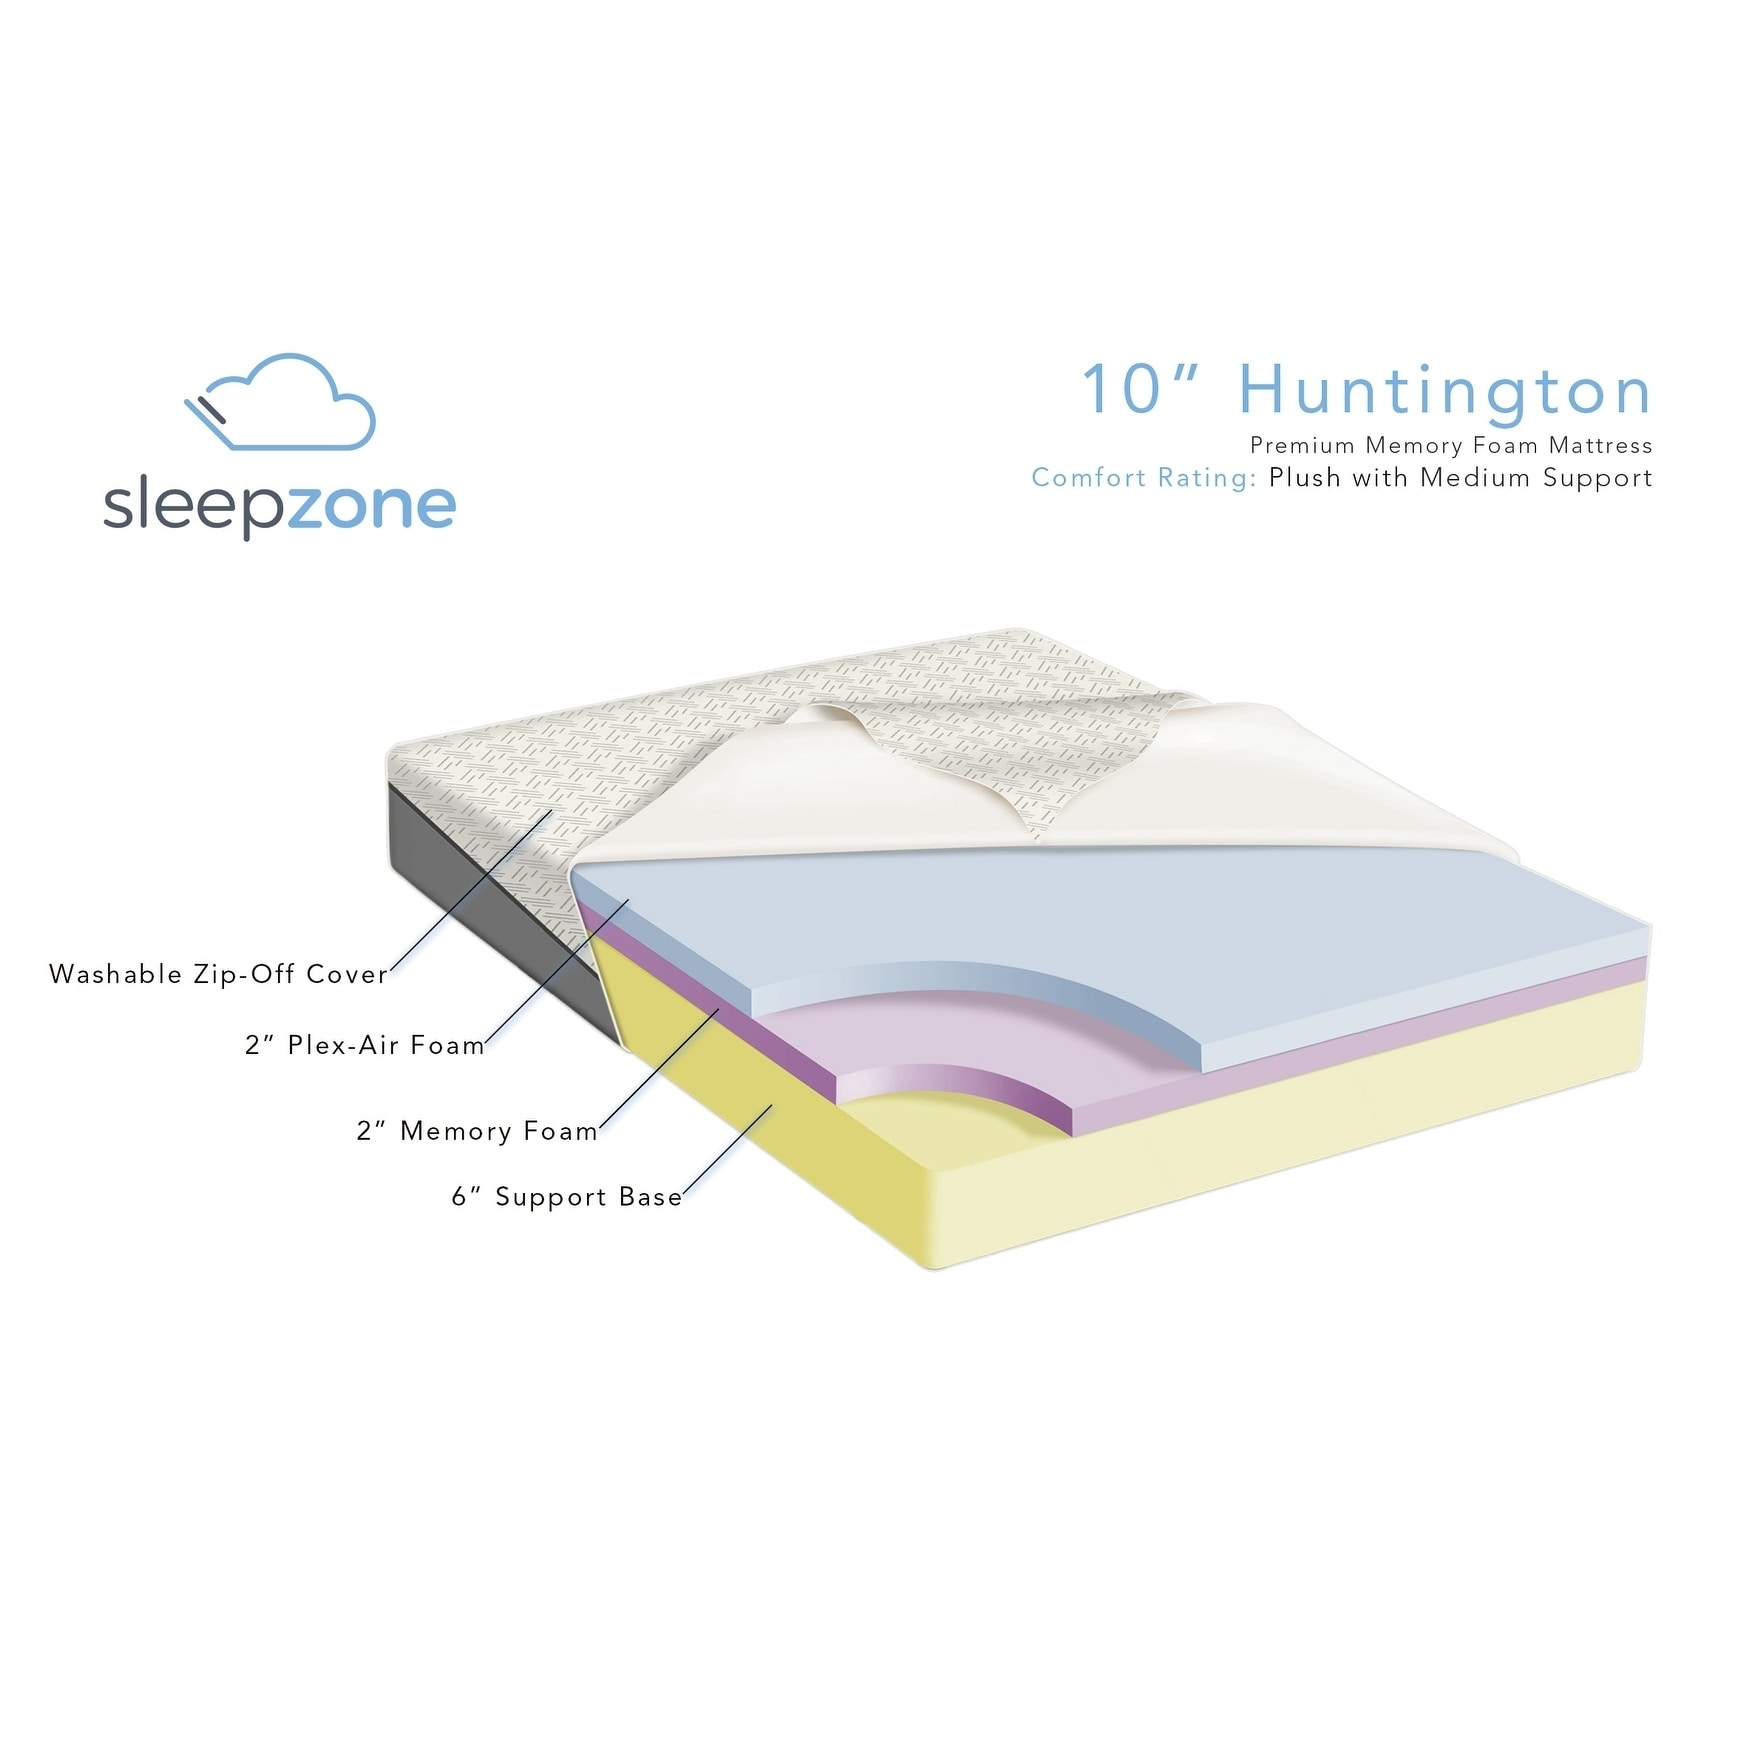 sleep zone huntington 10 inch king size memory foam mattress free